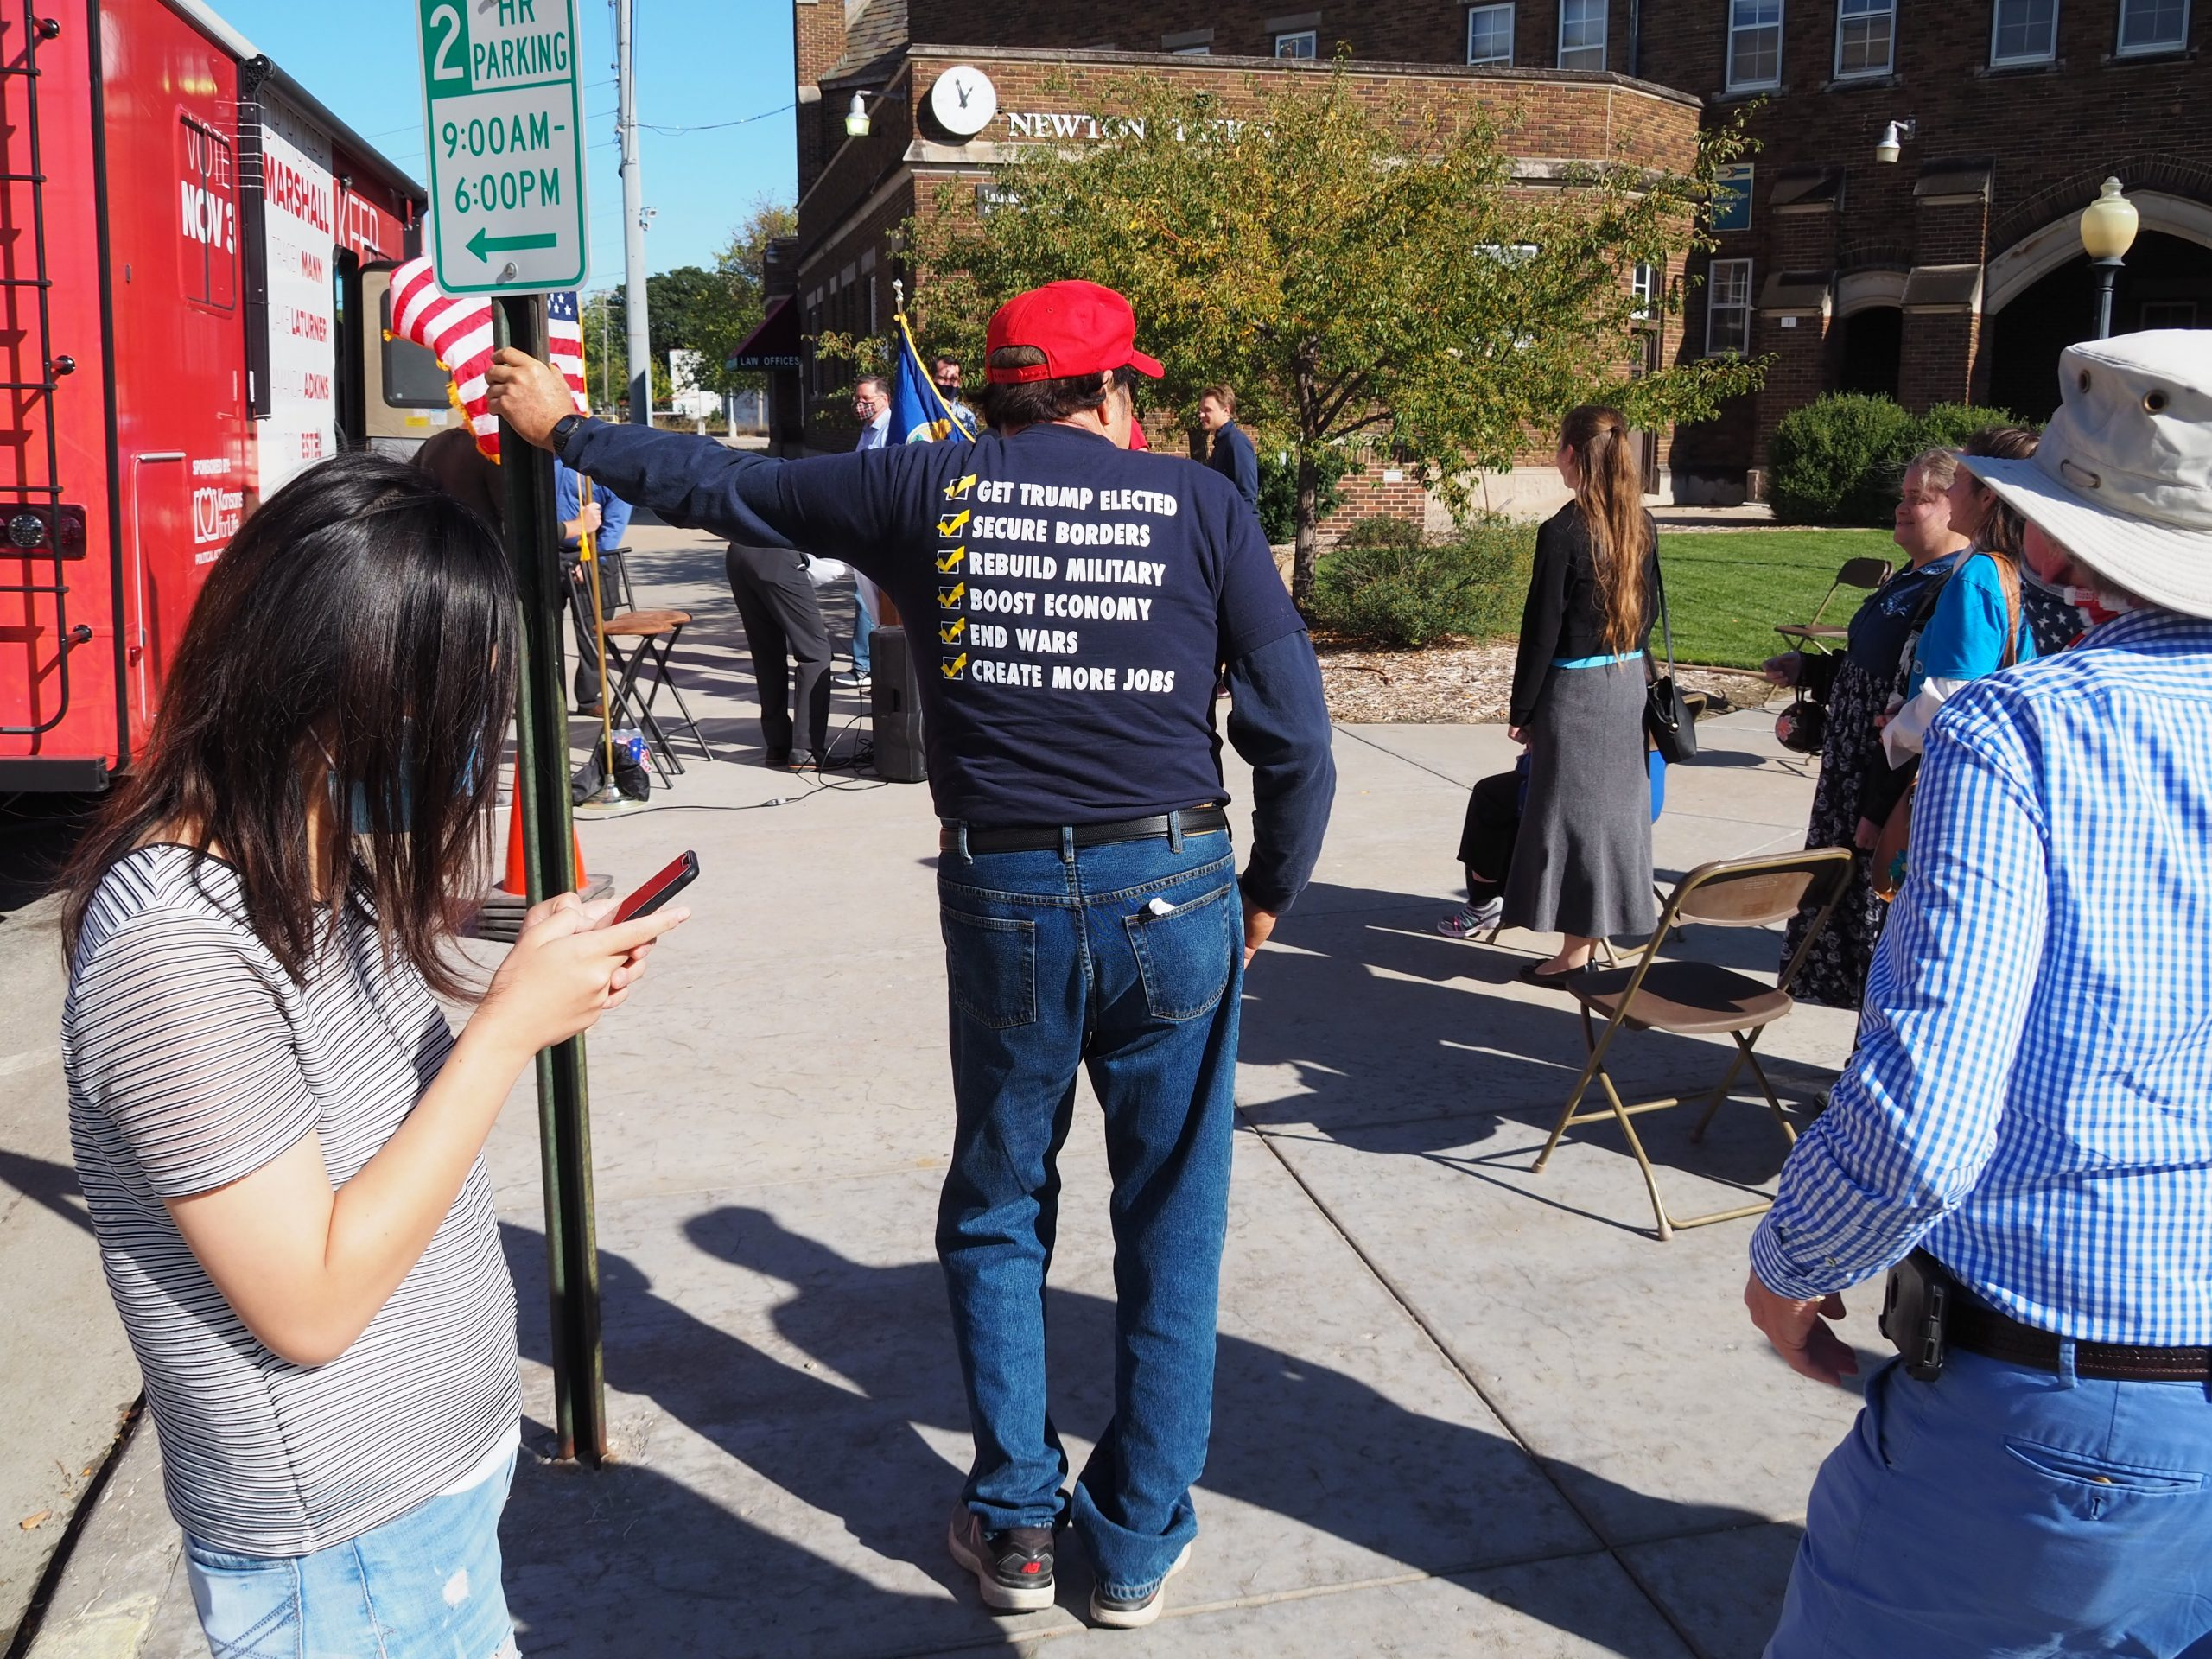 A supporter of President Donald Trump left no doubt about his views on the presidential race at a pre-election Republican Party rally in Newton. Trump carried Kansas by 15 percentage points over Democrat Joe Biden, who prevailed in the national election. (Tim Carpenter/Kansas Reflector)